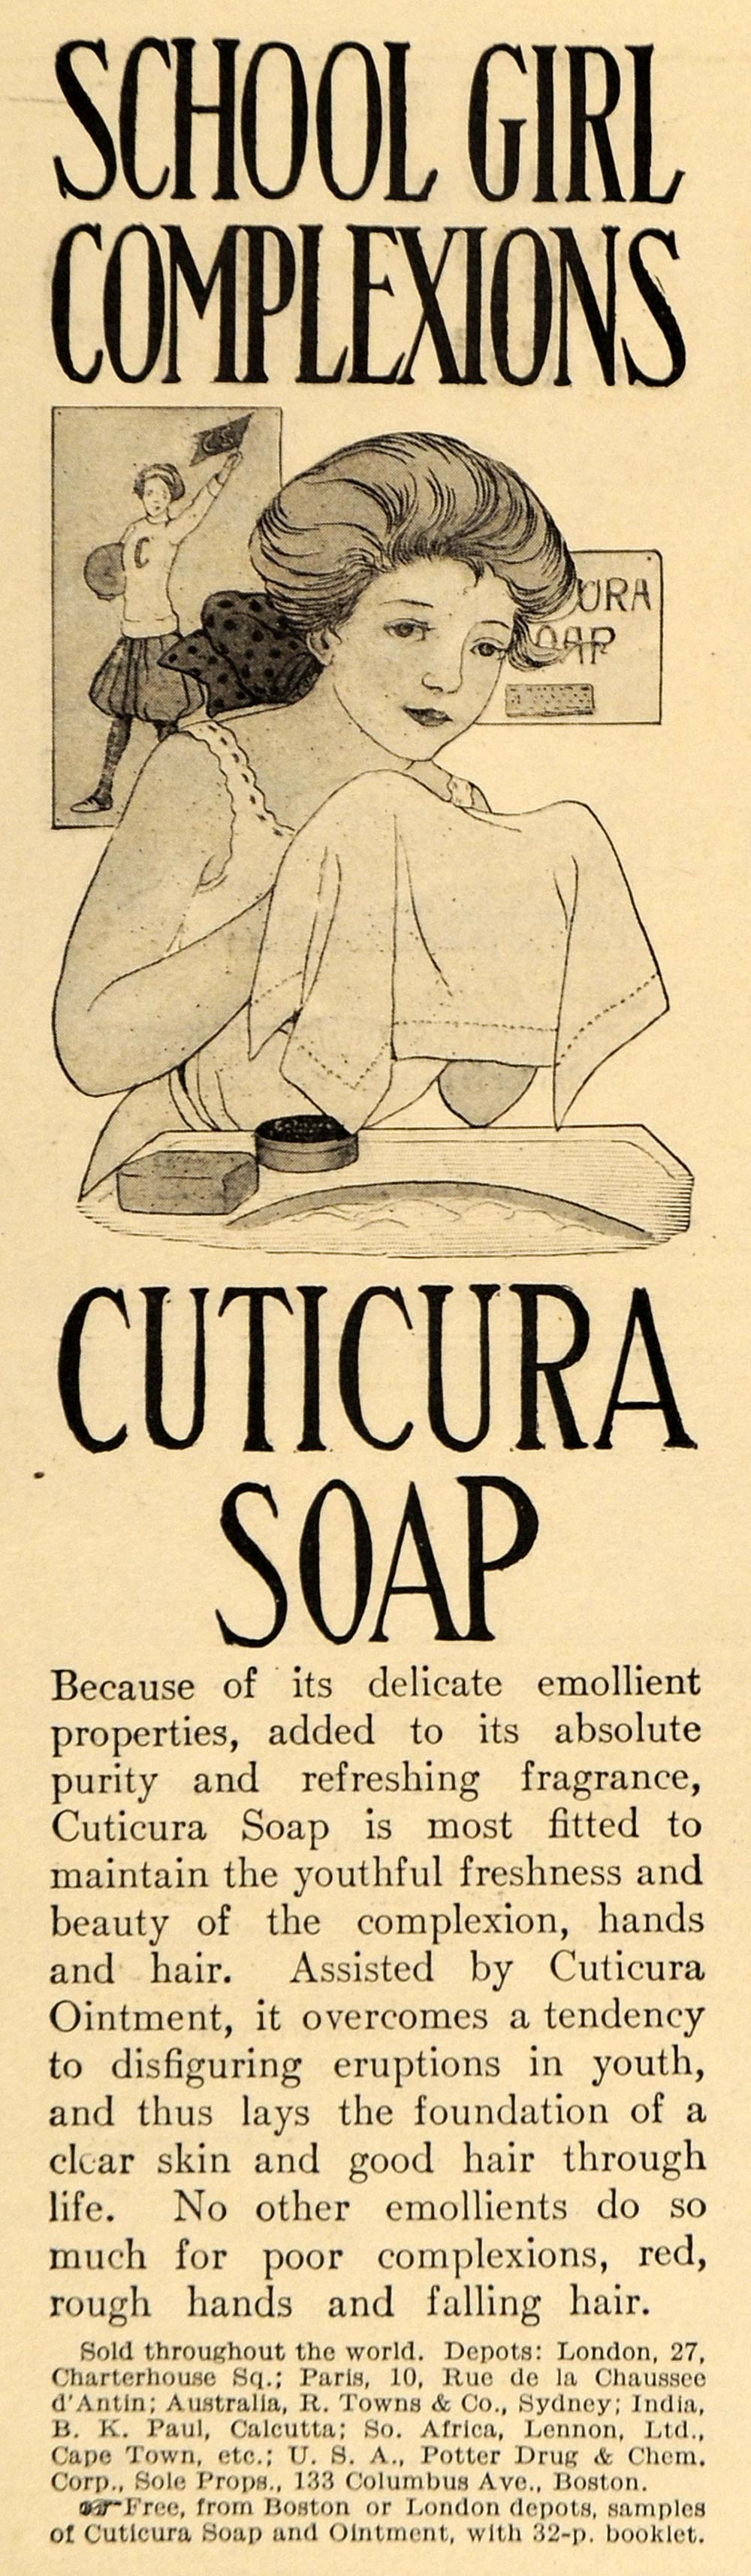 1911 Ad School Girl Complexion Cuticura Soap Hands Hair - ORIGINAL EM1